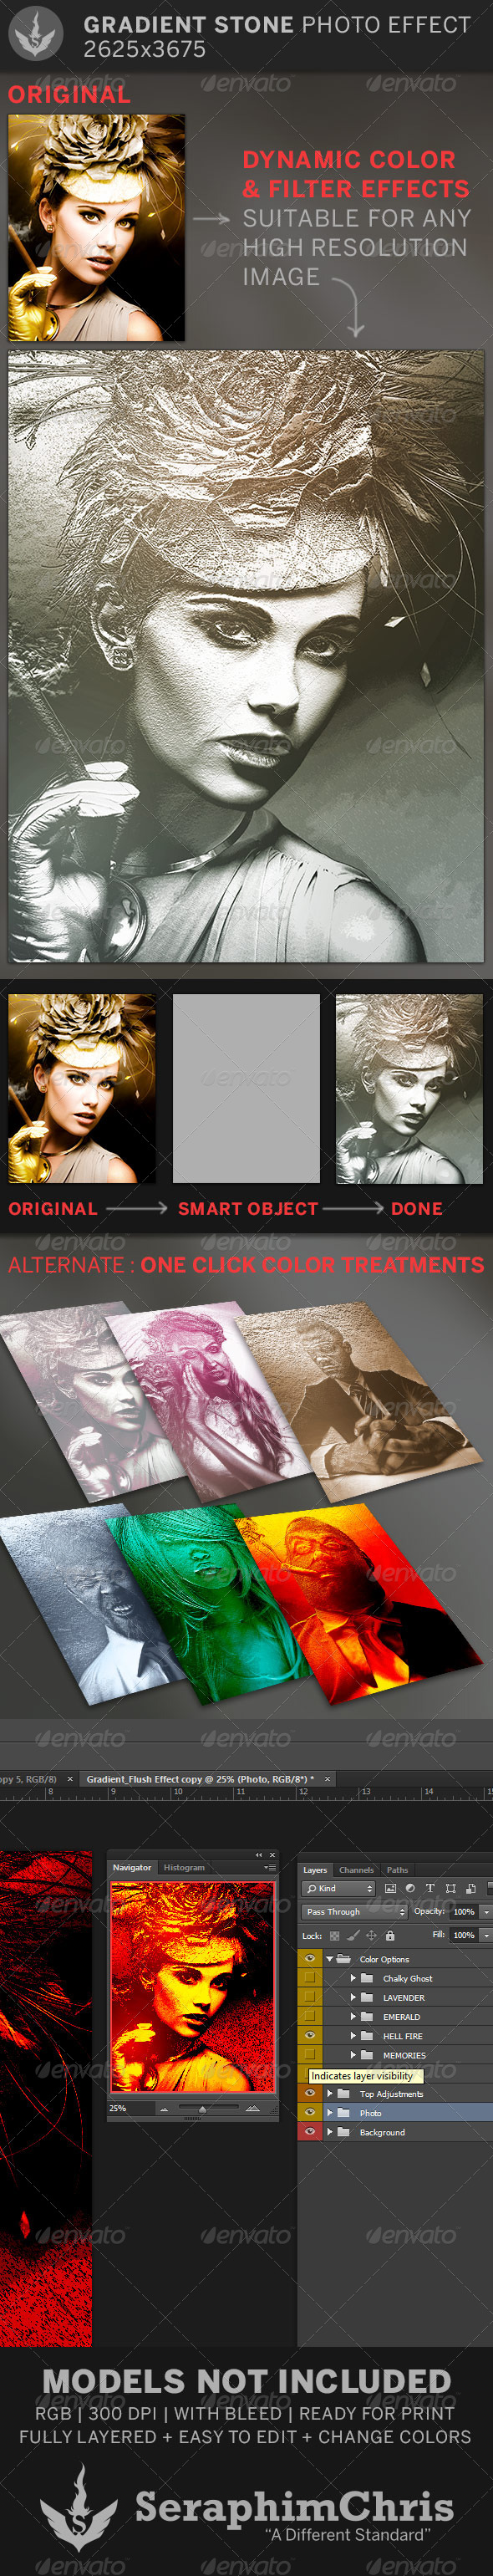 GraphicRiver Gradient Stone Photo Effect Template 6755481